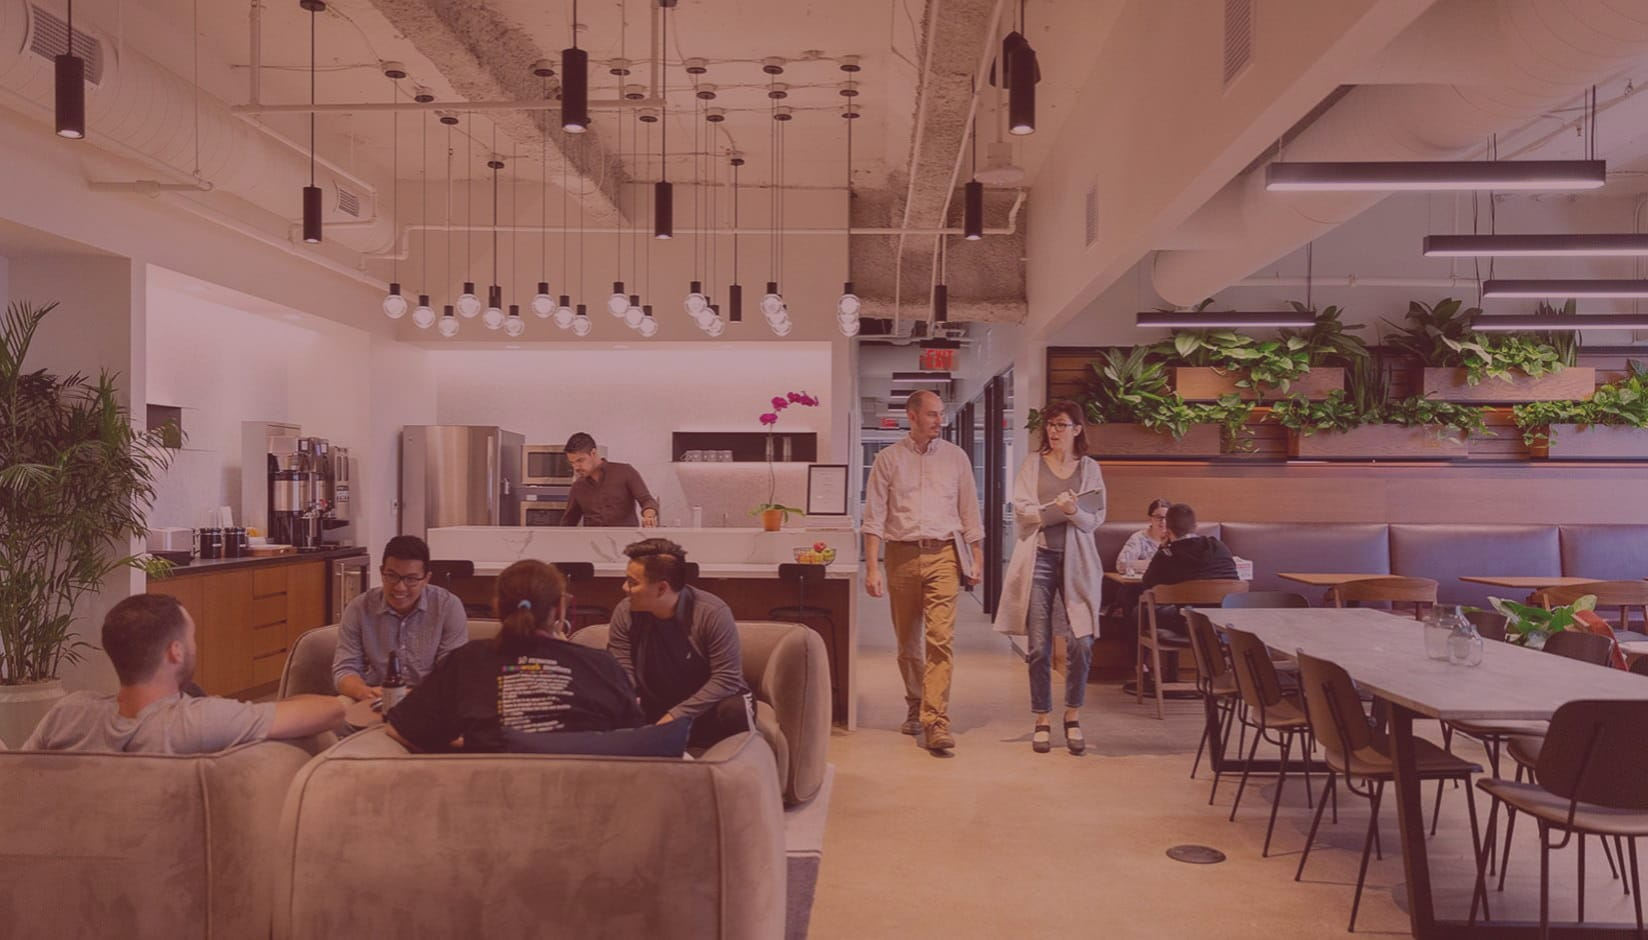 How to Retain Members in Coworking Spaces